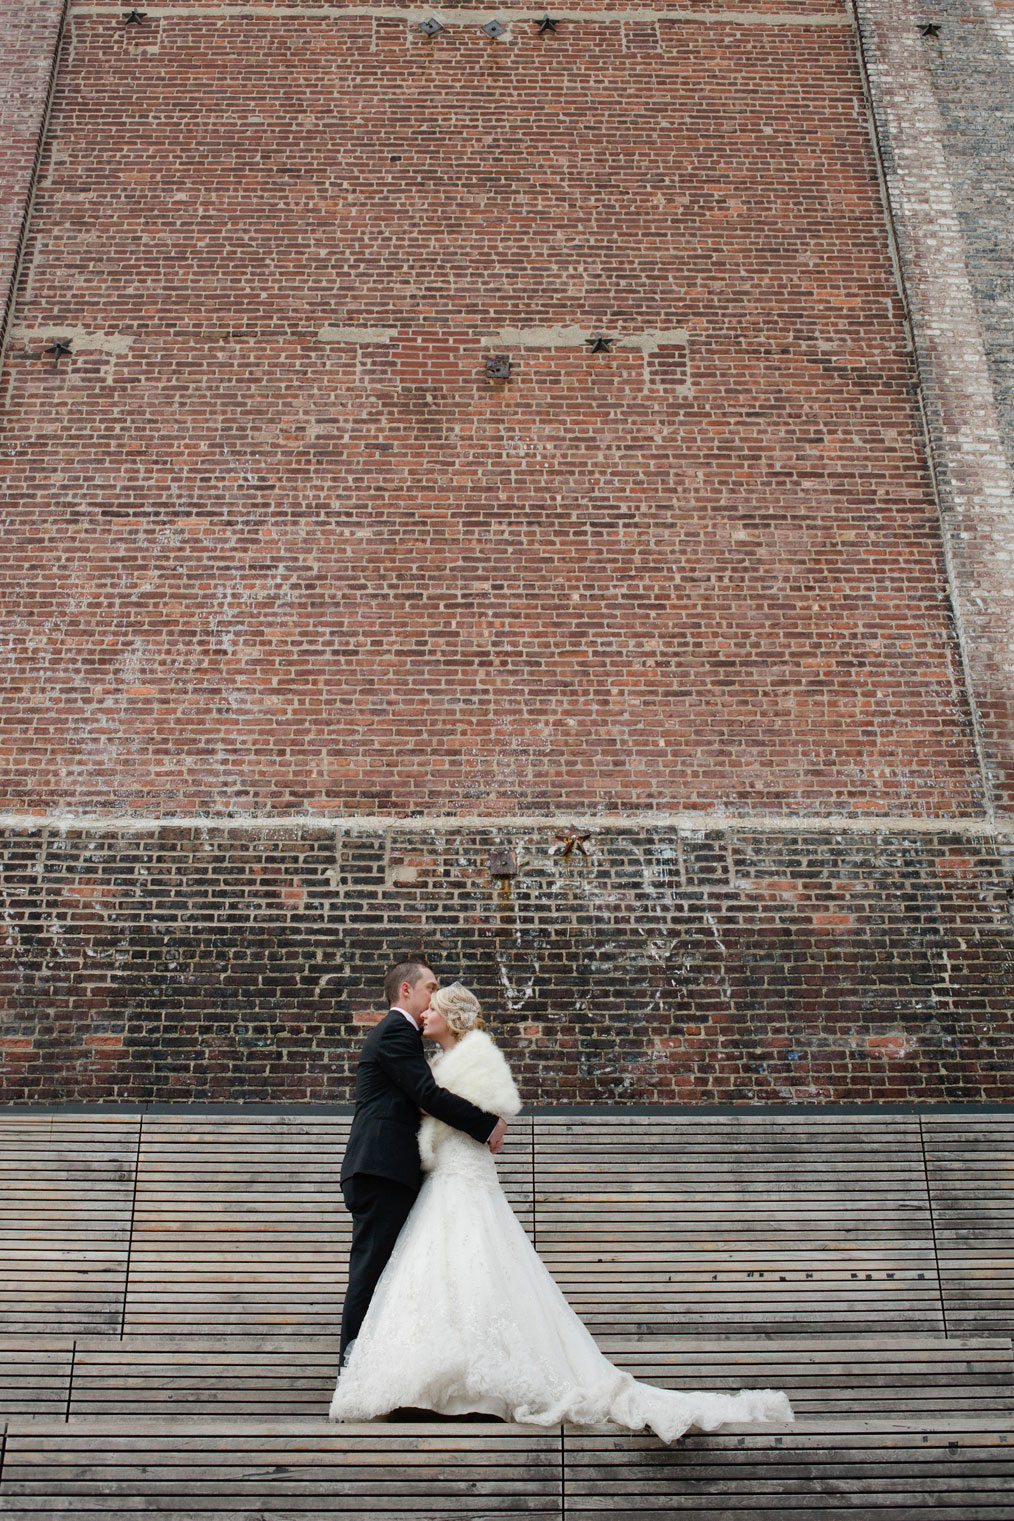 Worksop wedding photographer New York Wedding. The High Line New York